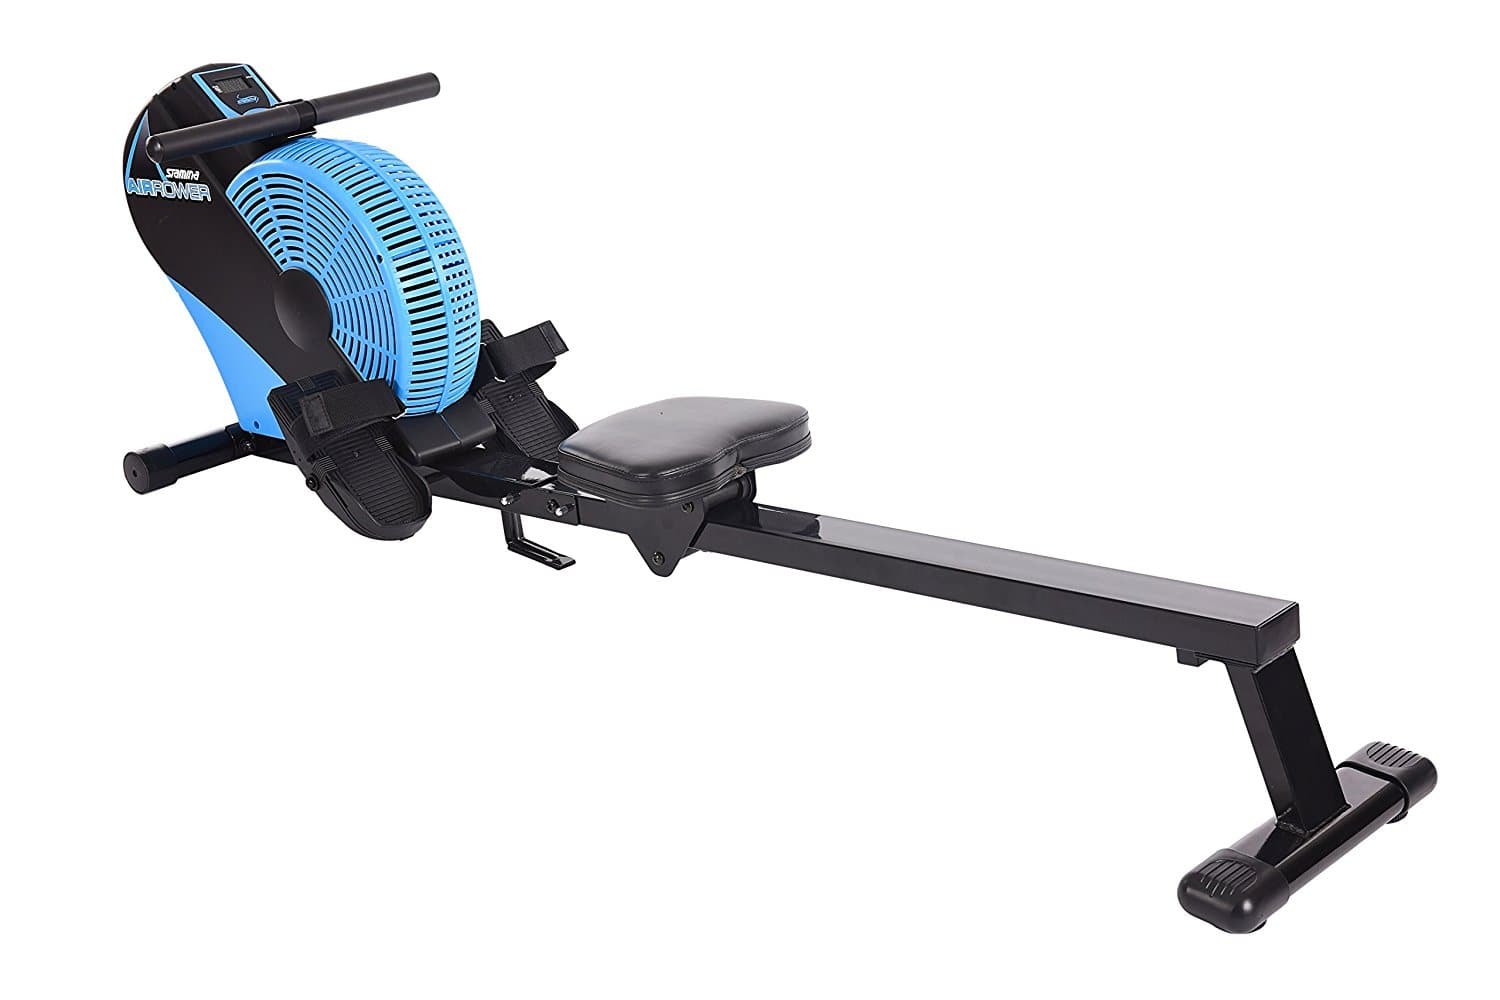 Stamina ATS Air Rower Cardio Trainer Machine (Black/Blue) $229.99 + Free Shipping